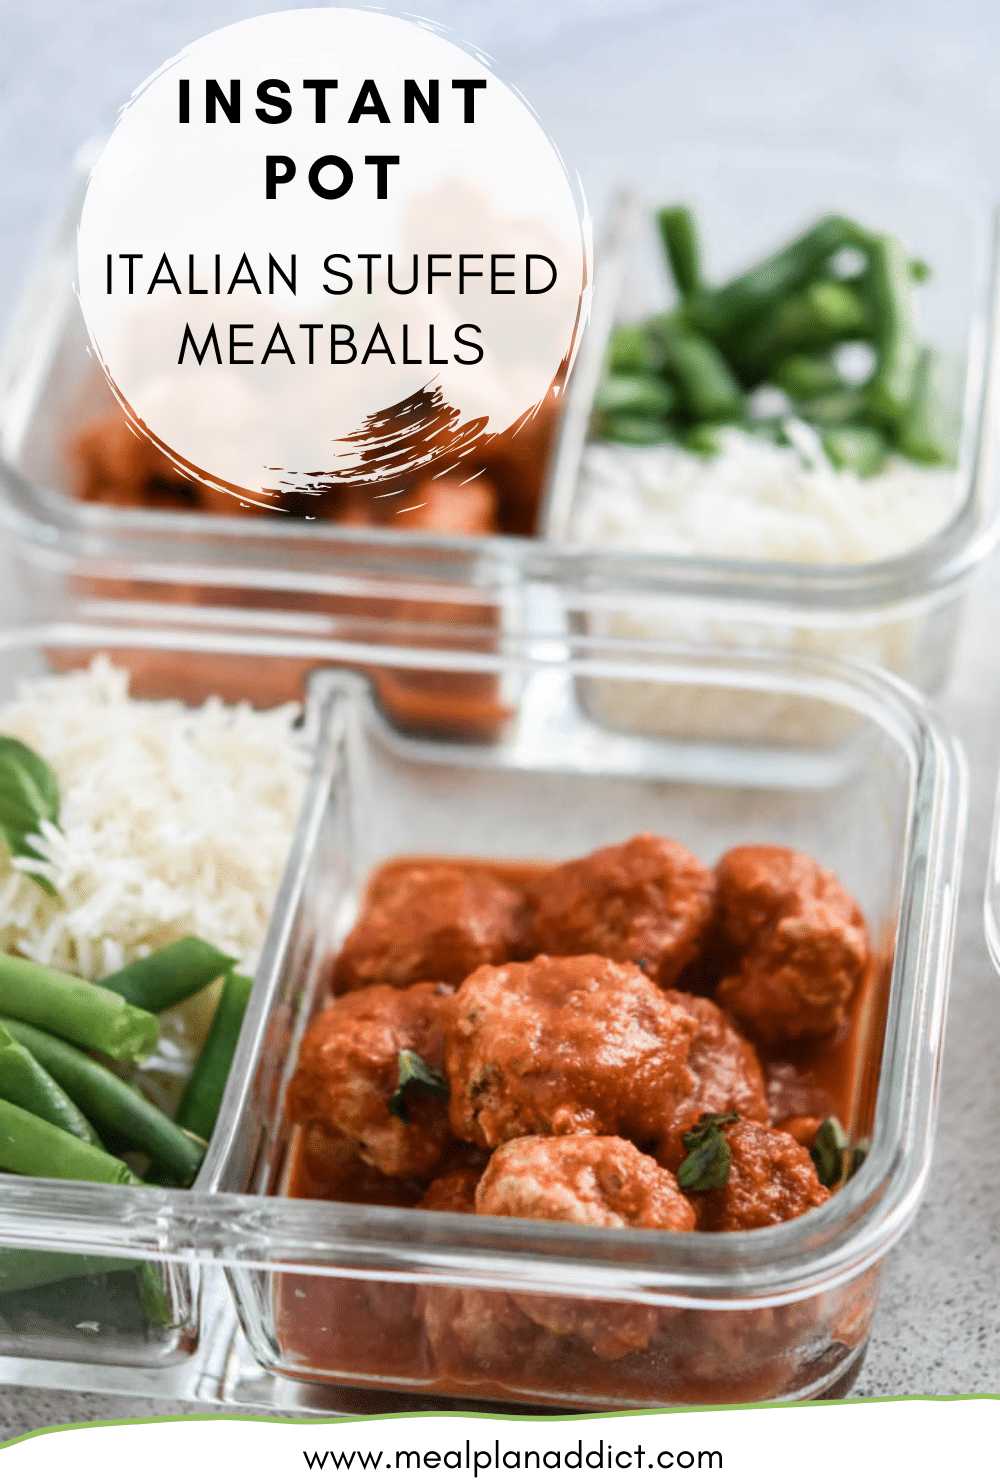 Instant Pot Italian Stuffed Meatballs